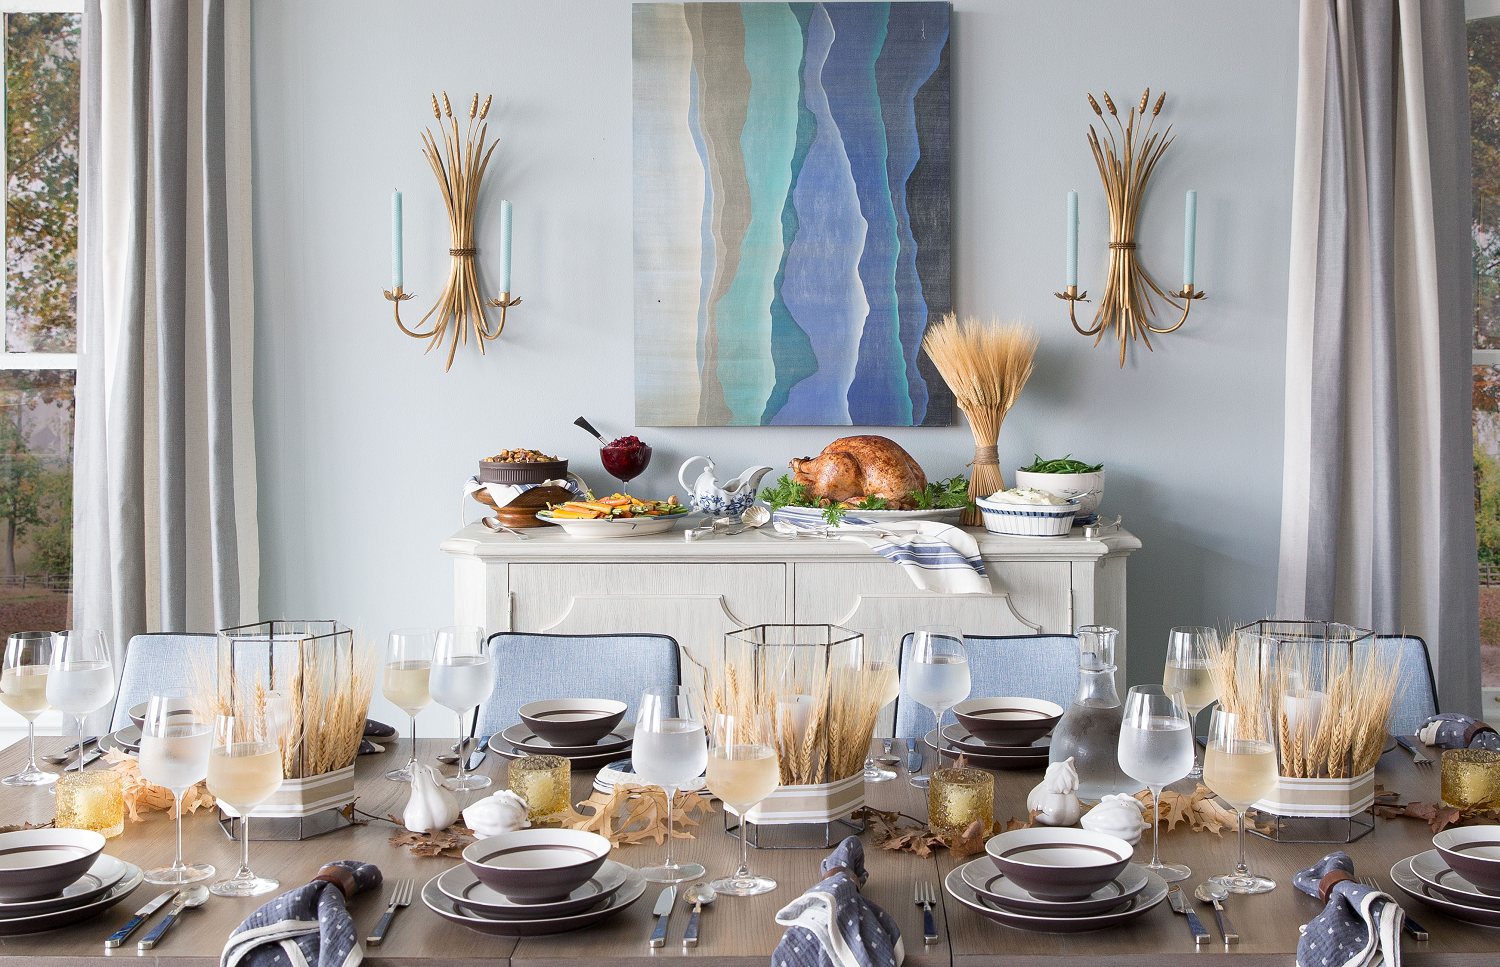 Although hosting can be stressful, styling a tablescape can be nice and simple if you use these helpful tips.{&amp;nbsp;}<p></p>